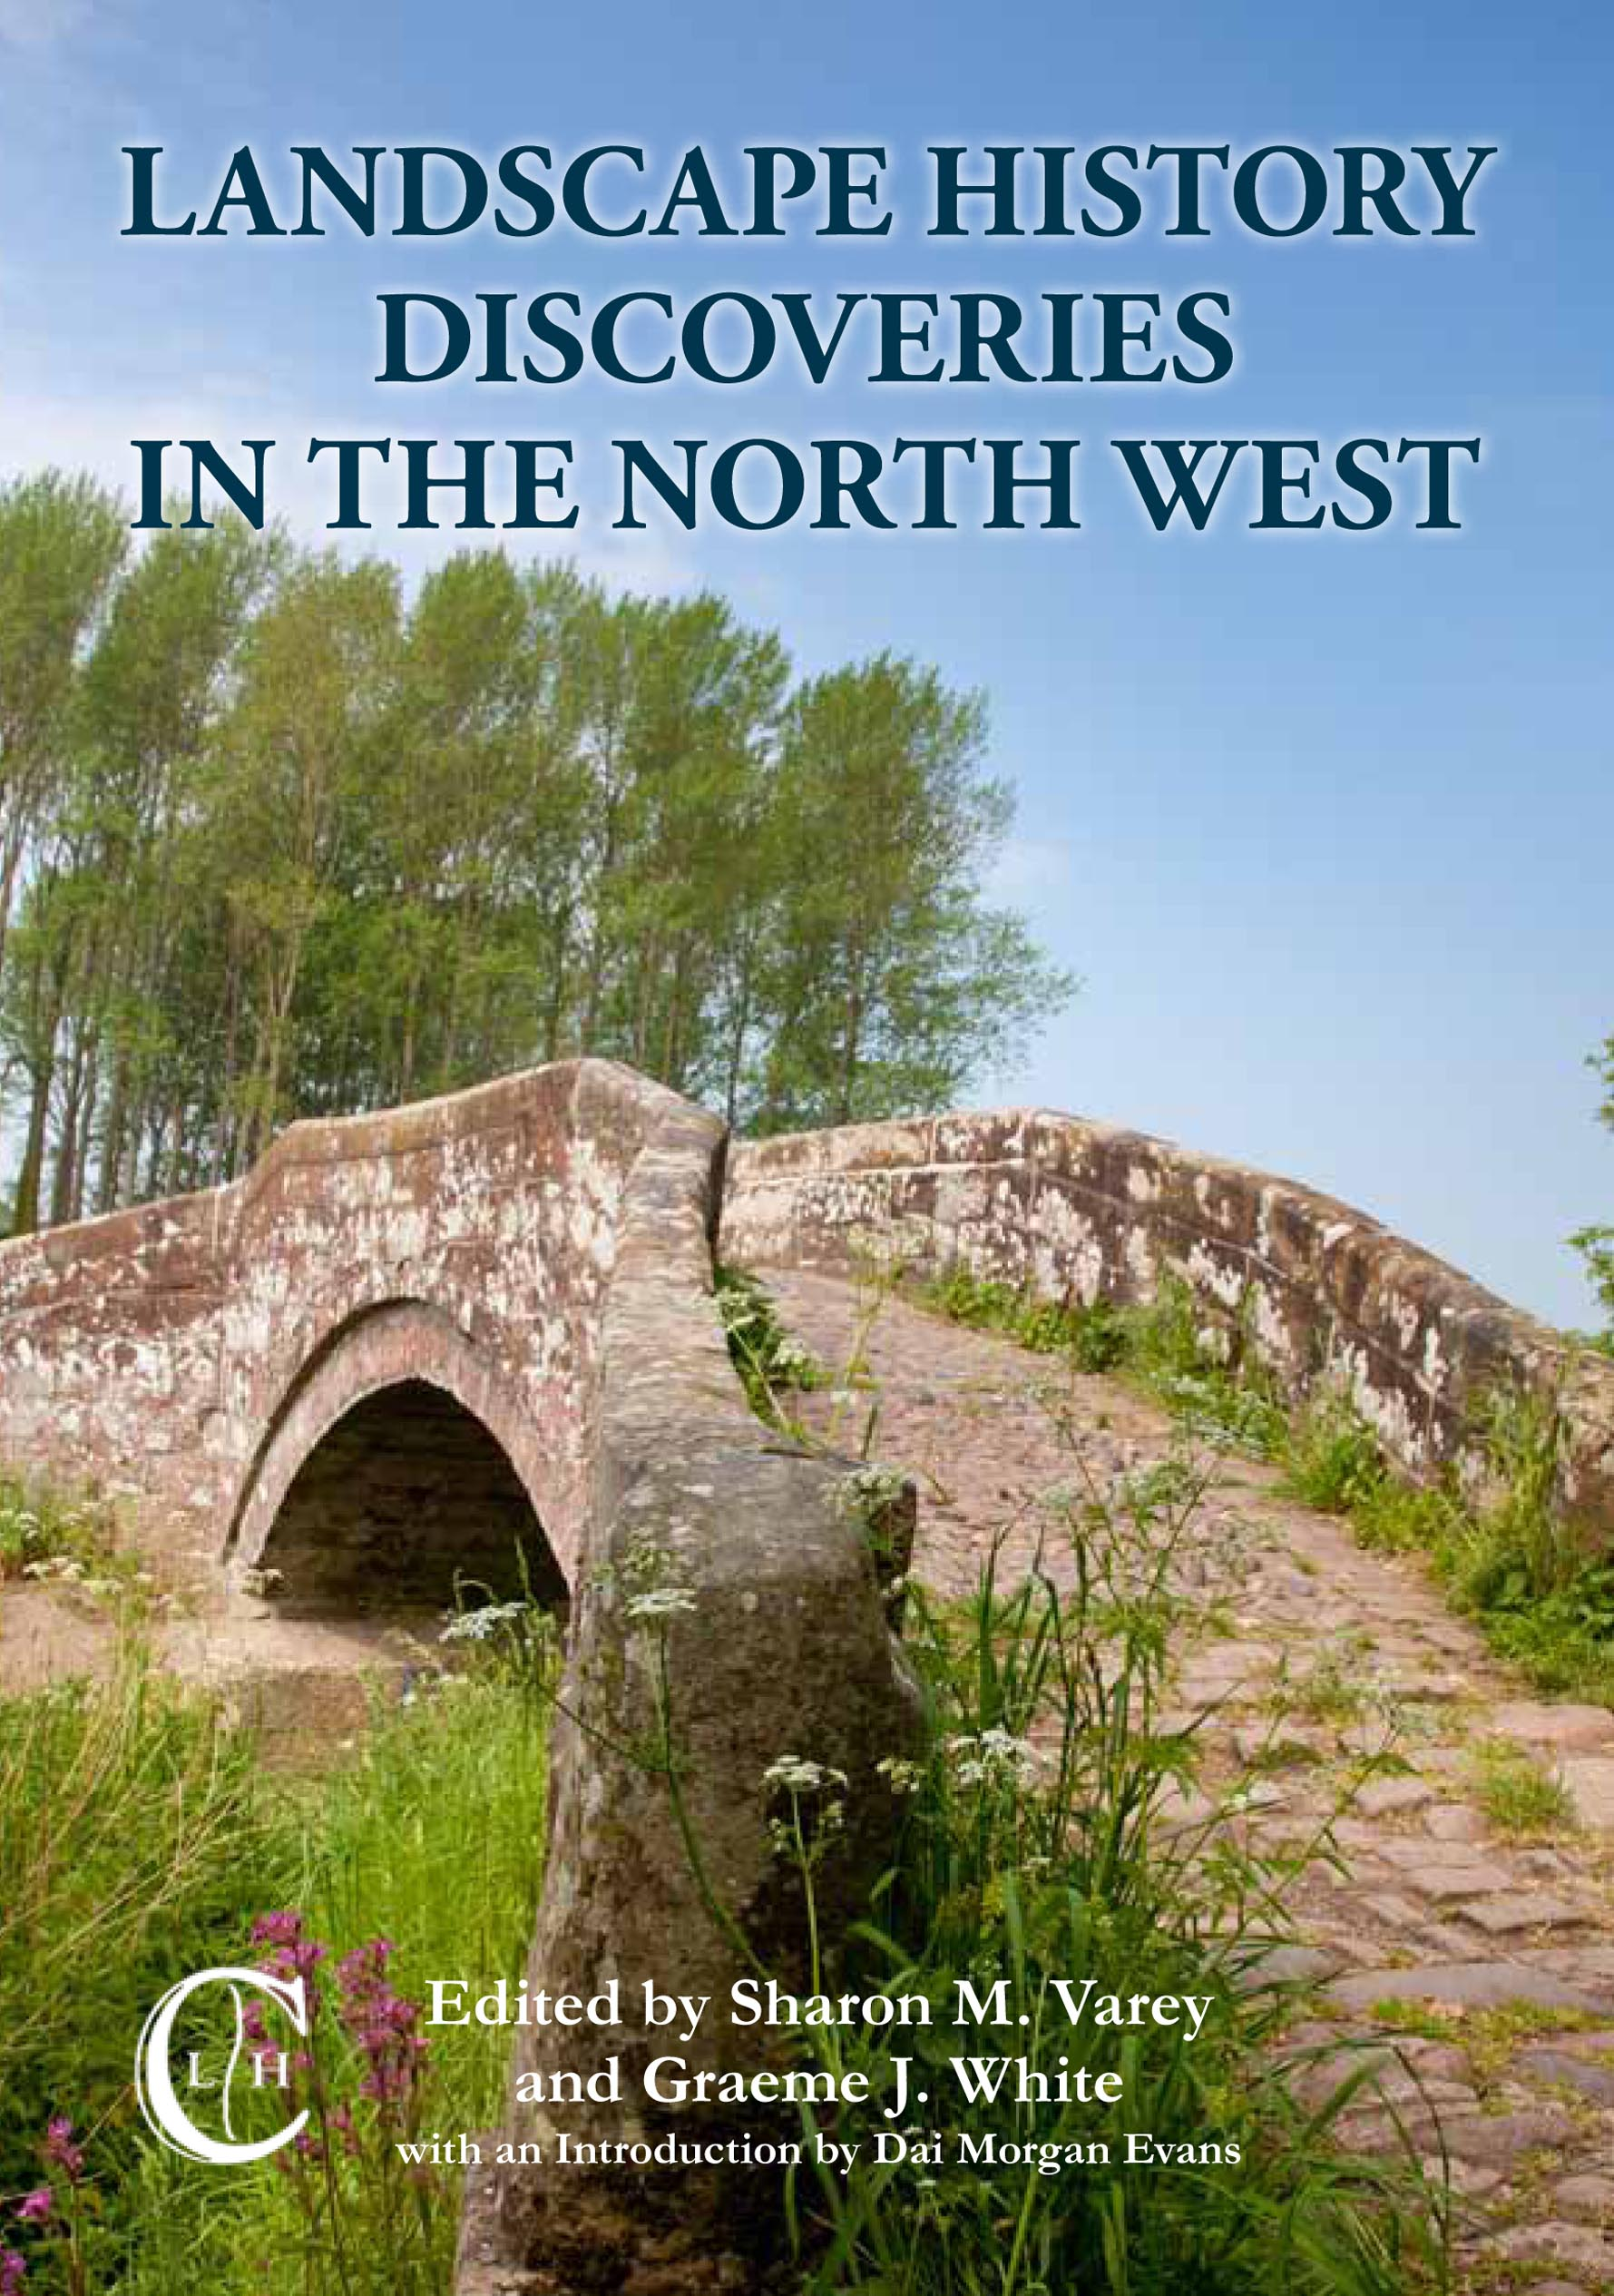 Landscape History Discoveries in the North West